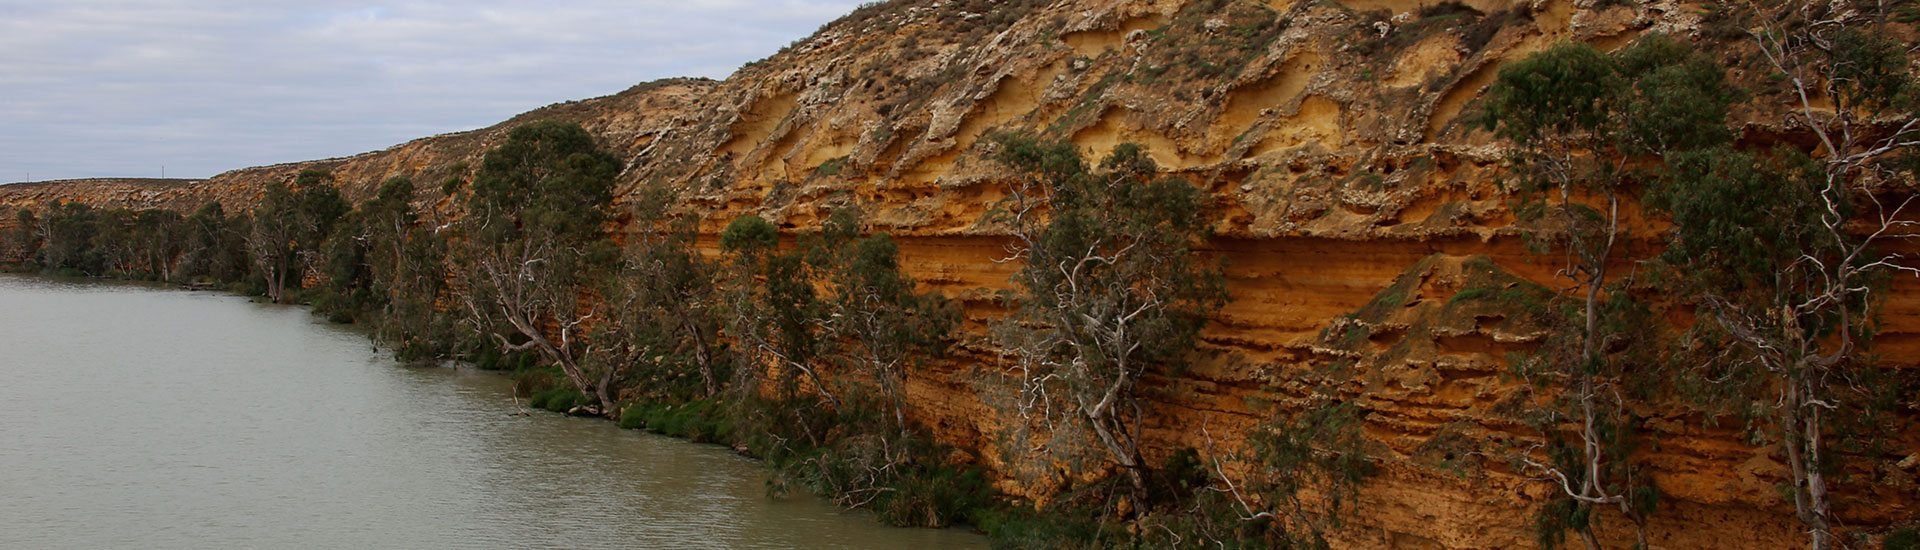 Gorgeous shot of Murray River in South Australia.